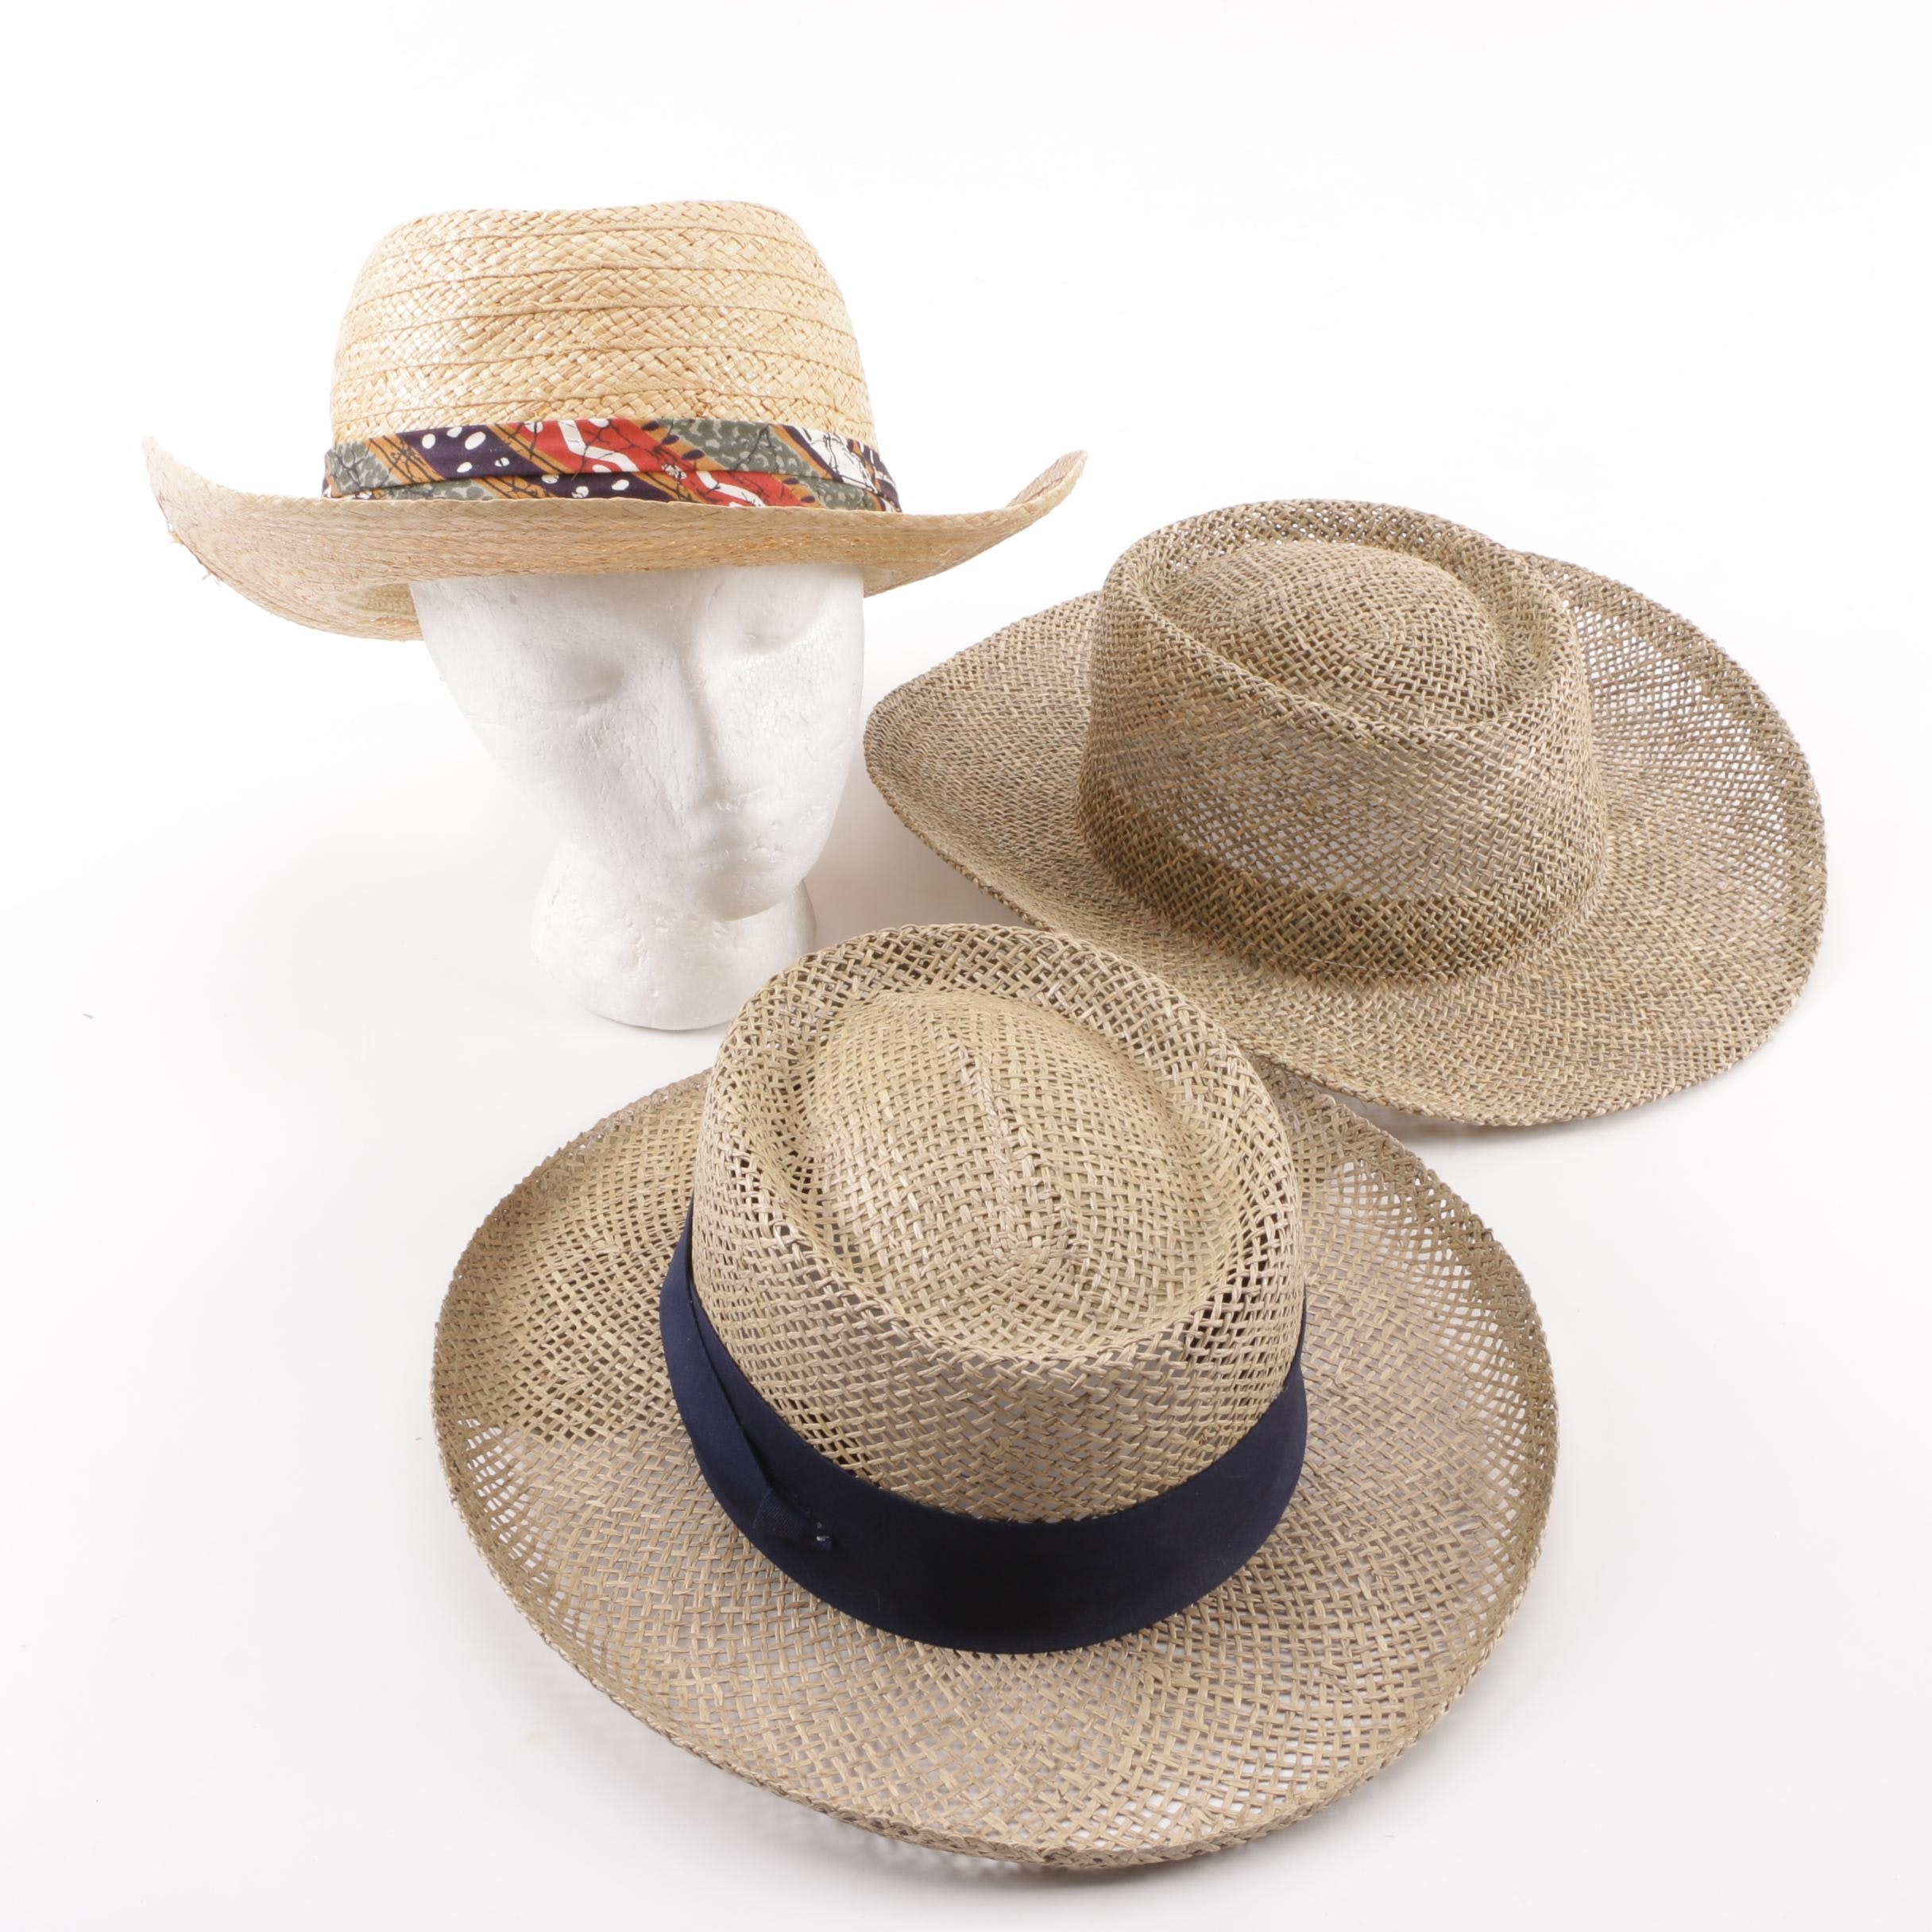 Woven Natural Fiber Hats including Biltmore and Imperial